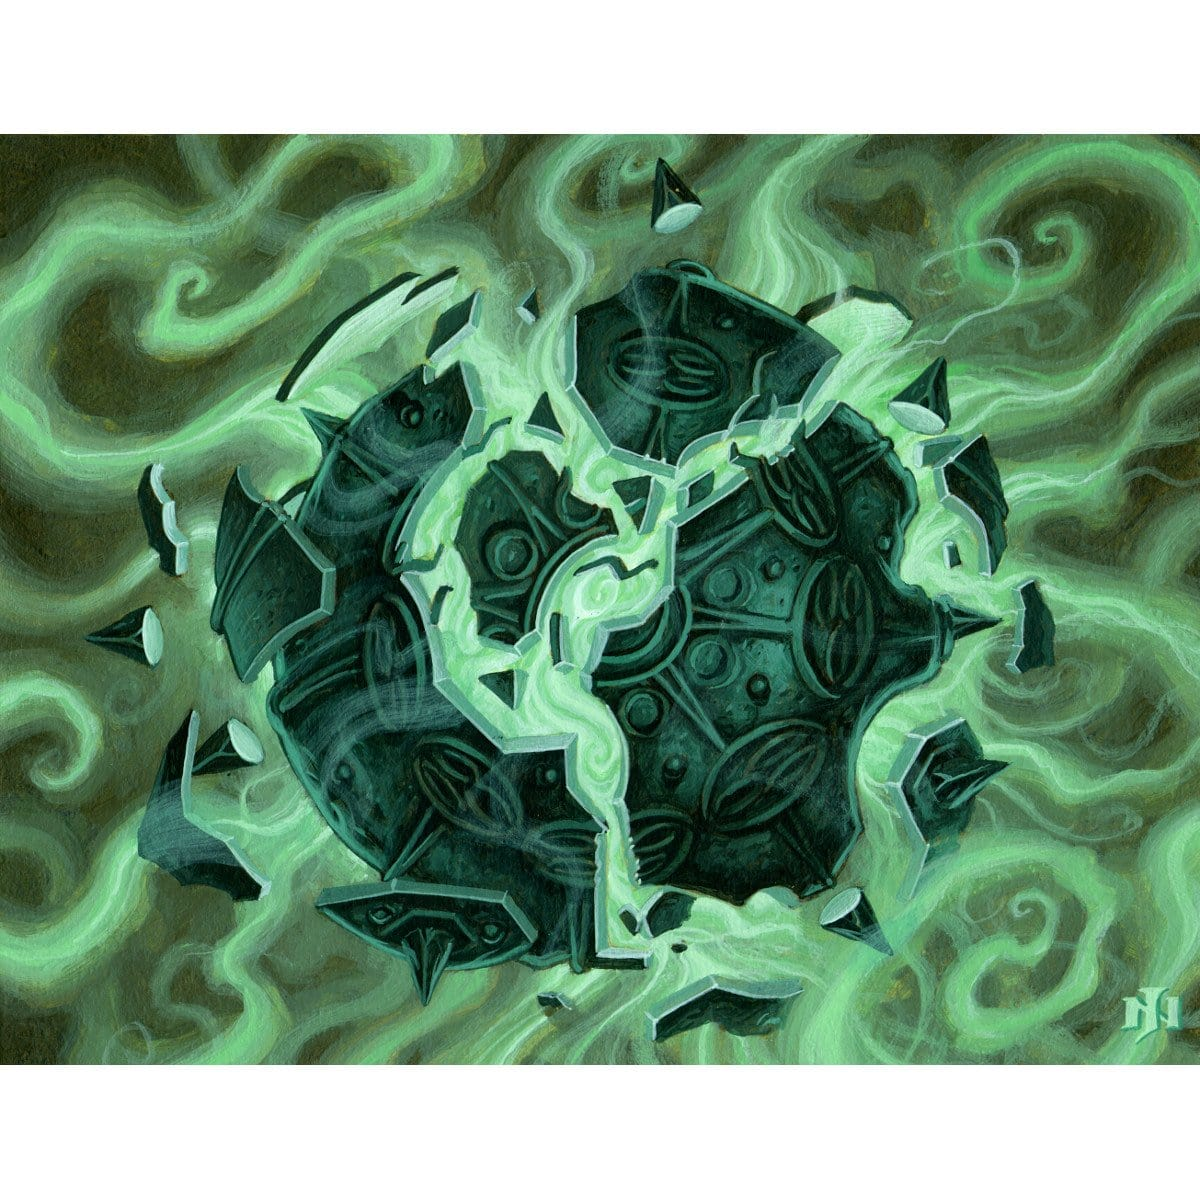 Lifespark Spellbomb Print - Print - Original Magic Art - Accessories for Magic the Gathering and other card games